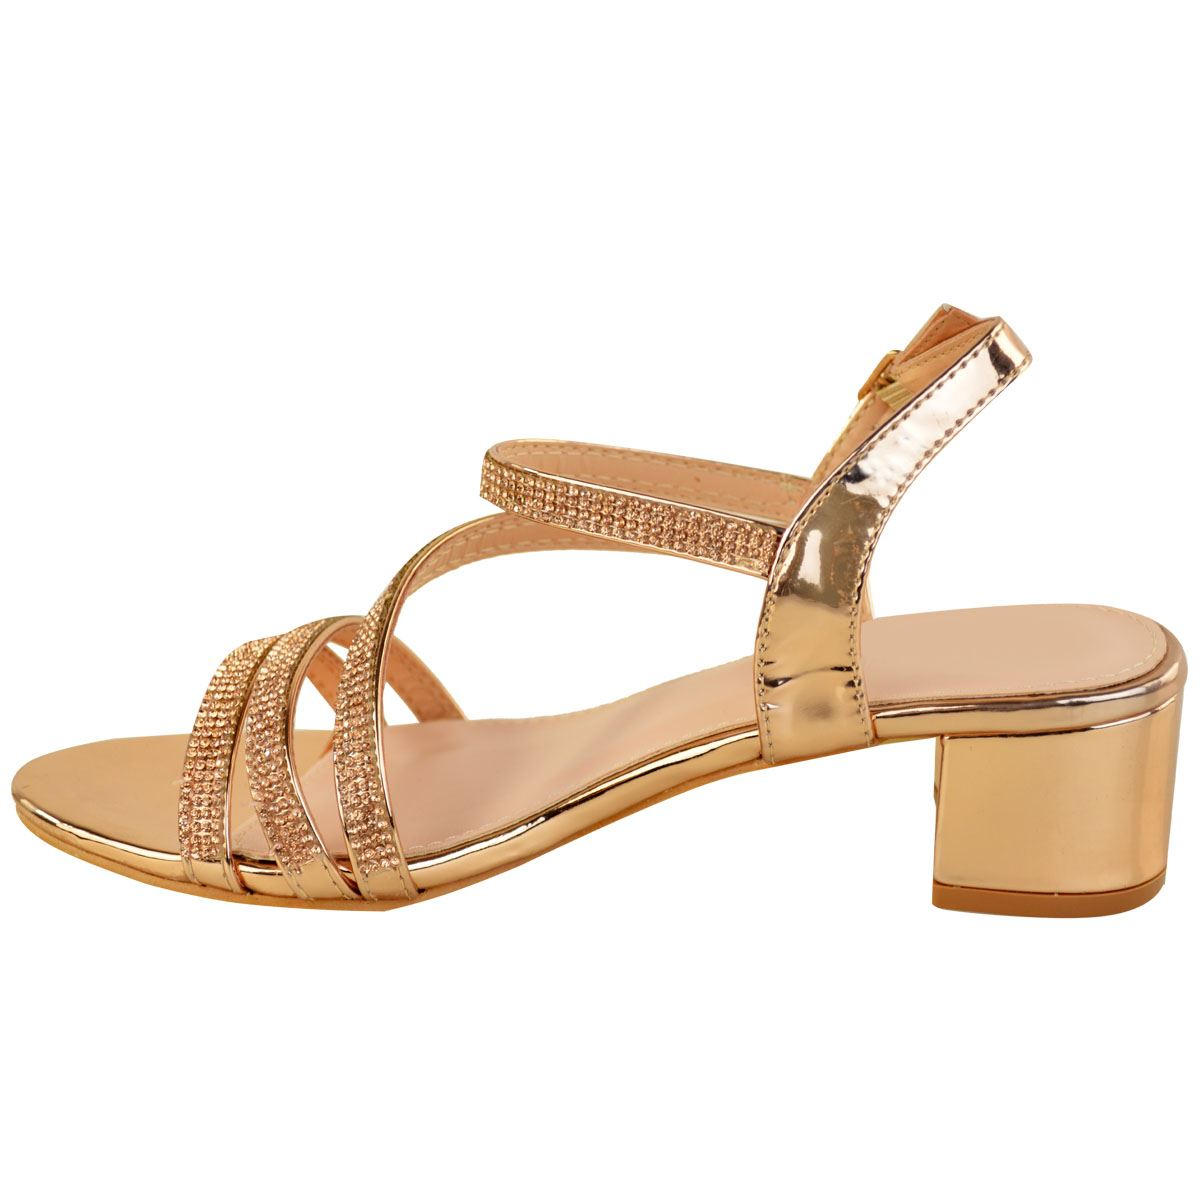 Details about Womens Ladies Low Block Heel Party Wedding Sandals Diamante Prom Shoes Strappy